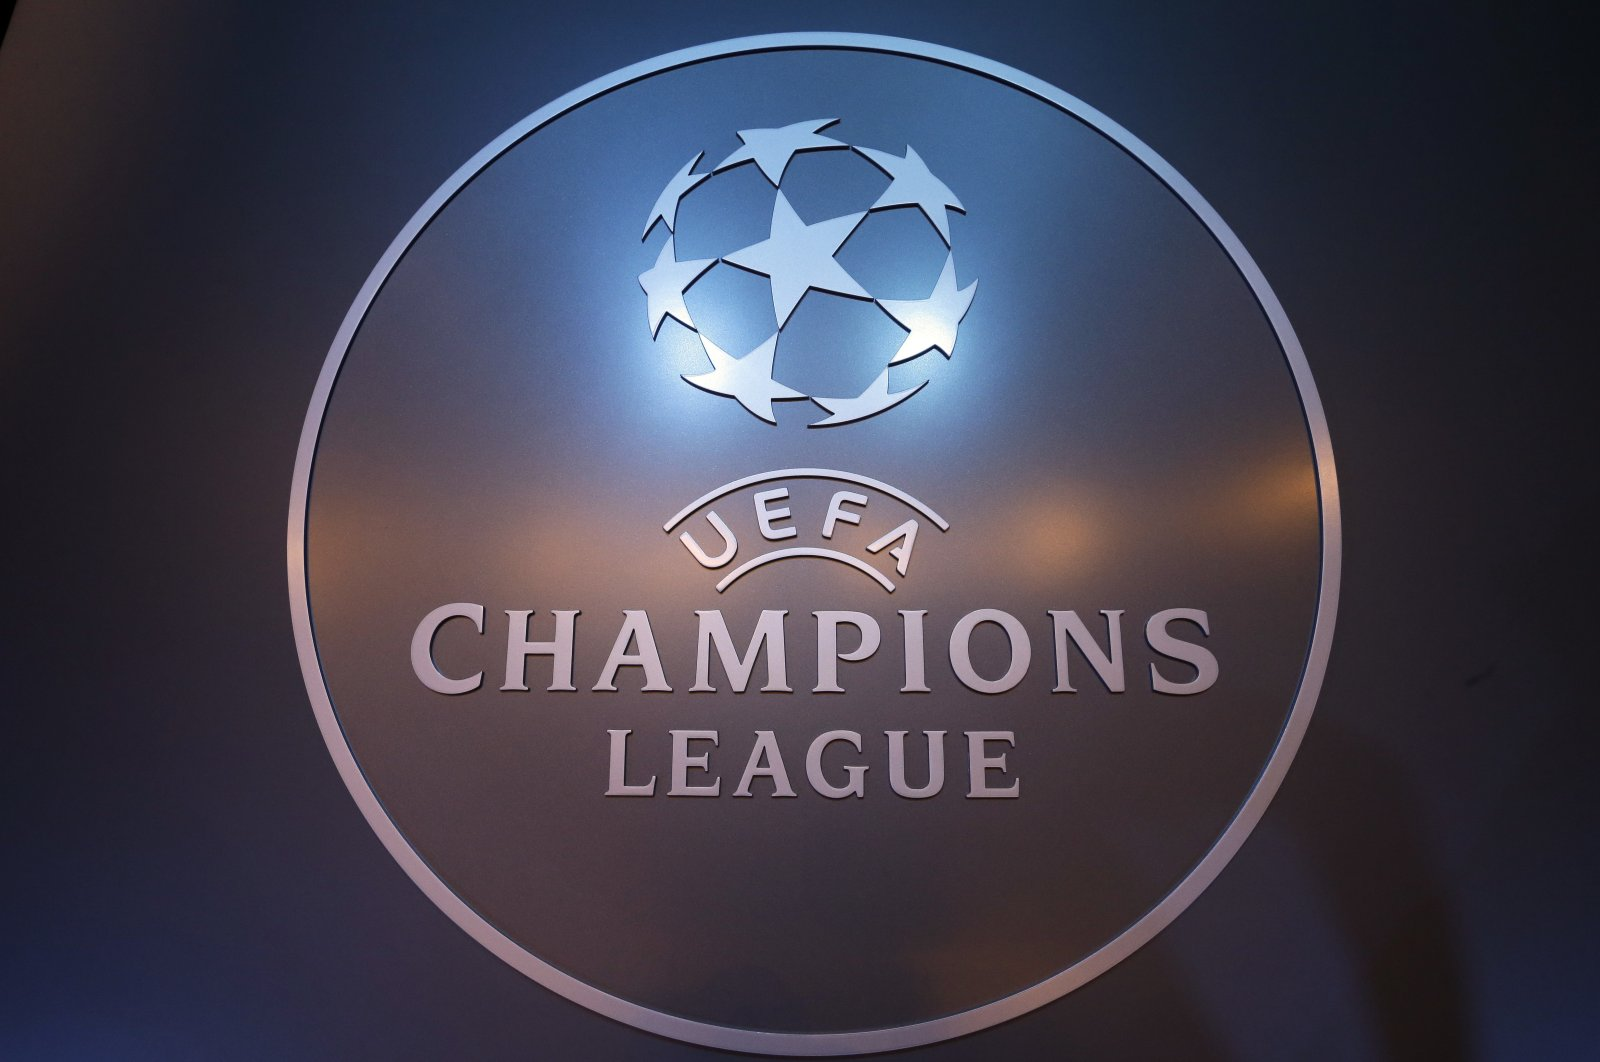 Specific data for the qualification of clubs and formats of the champions league, the europa league, and the europa conference league for the 2021/2022 season. UEFA to decide on Champions League fate next week | Daily ...